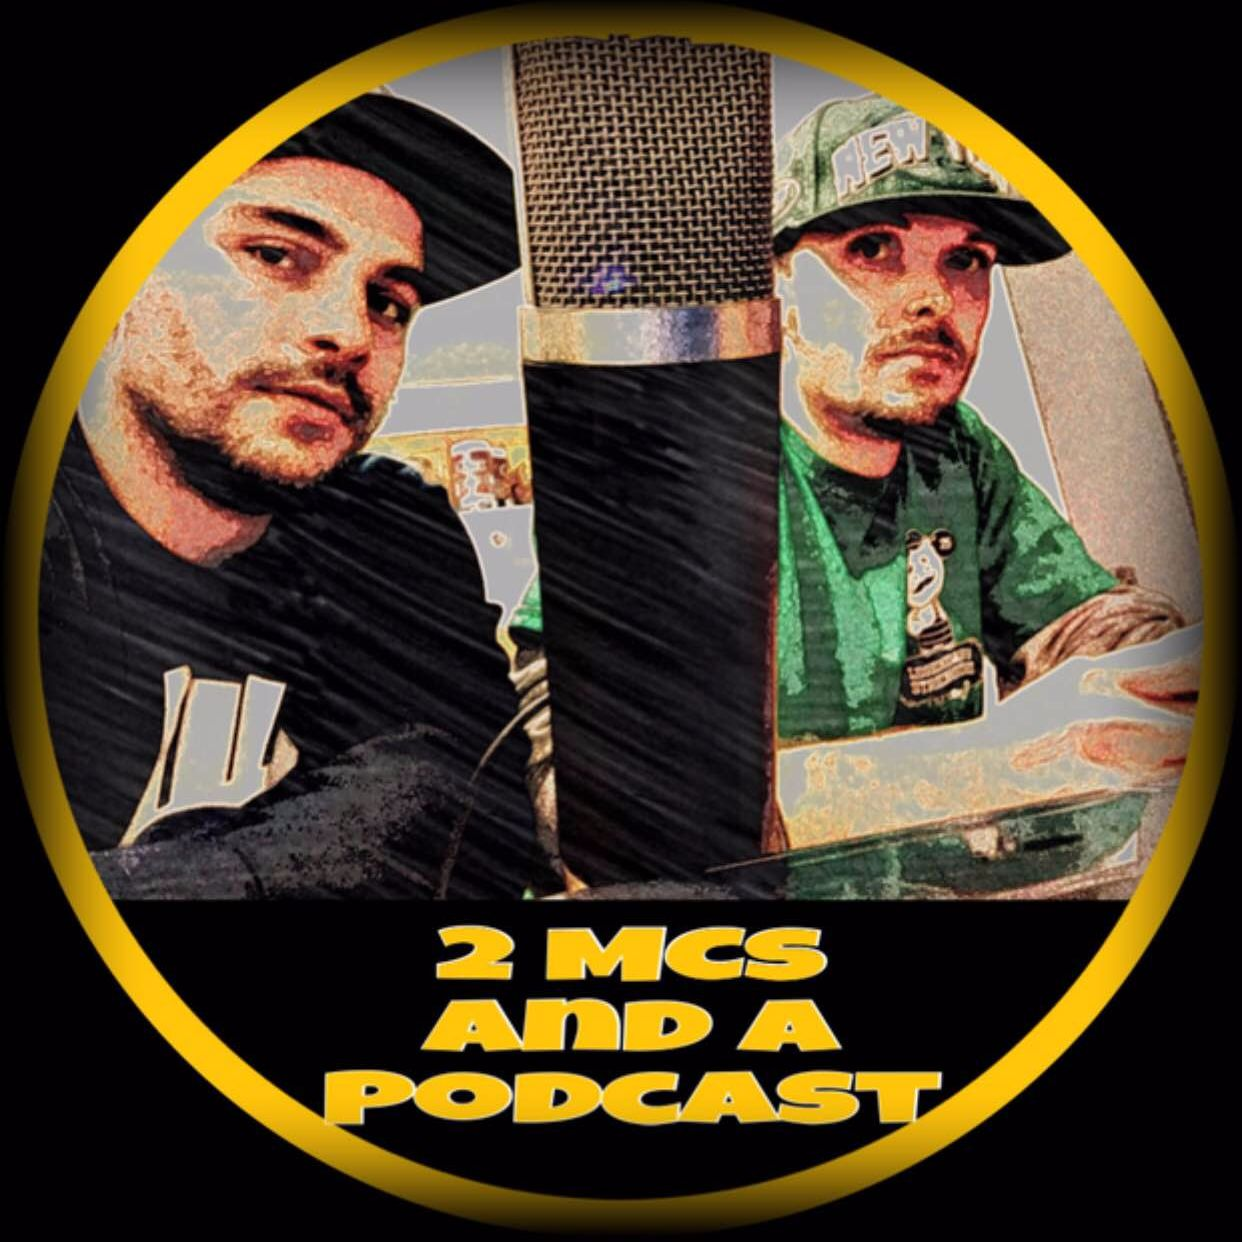 2 MCs and a Podcast